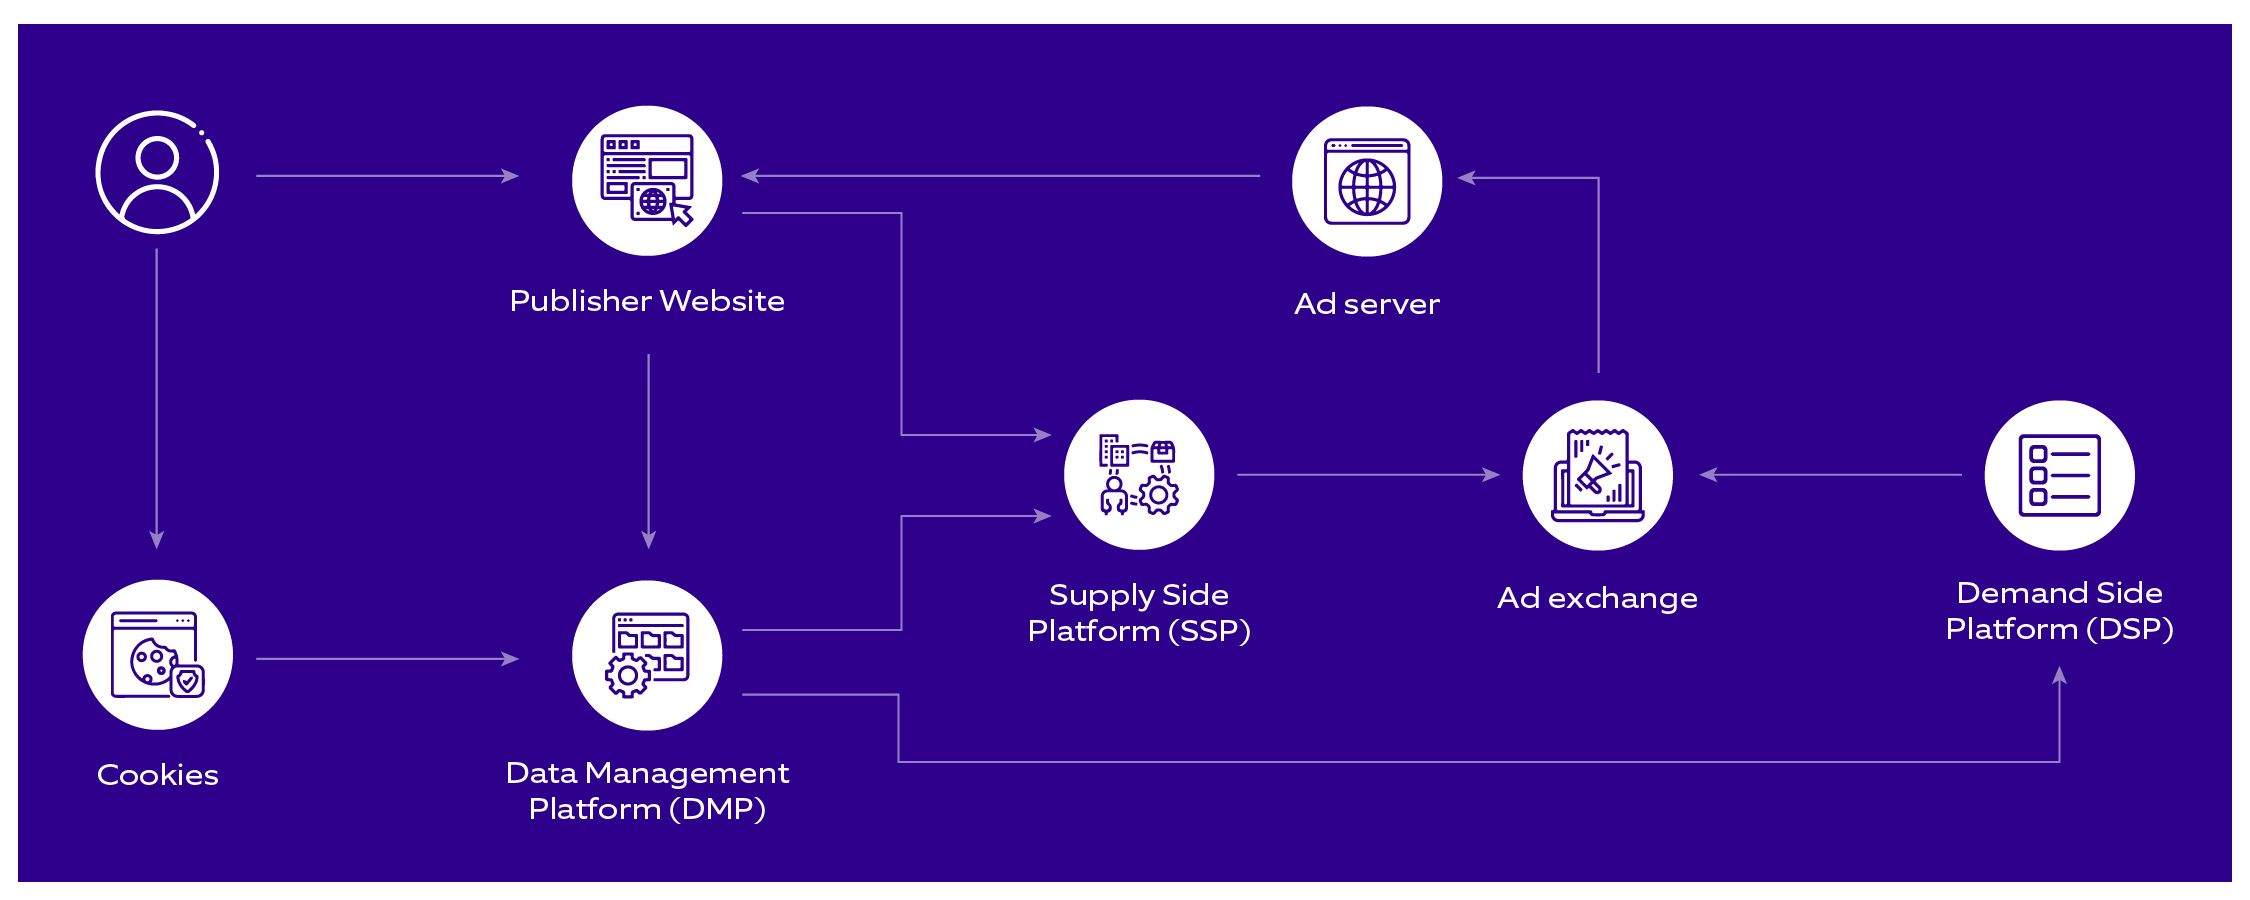 Adtech - representing Audience, Cookie, SSP, DMP, Ad Exchange, DSP and AdServer